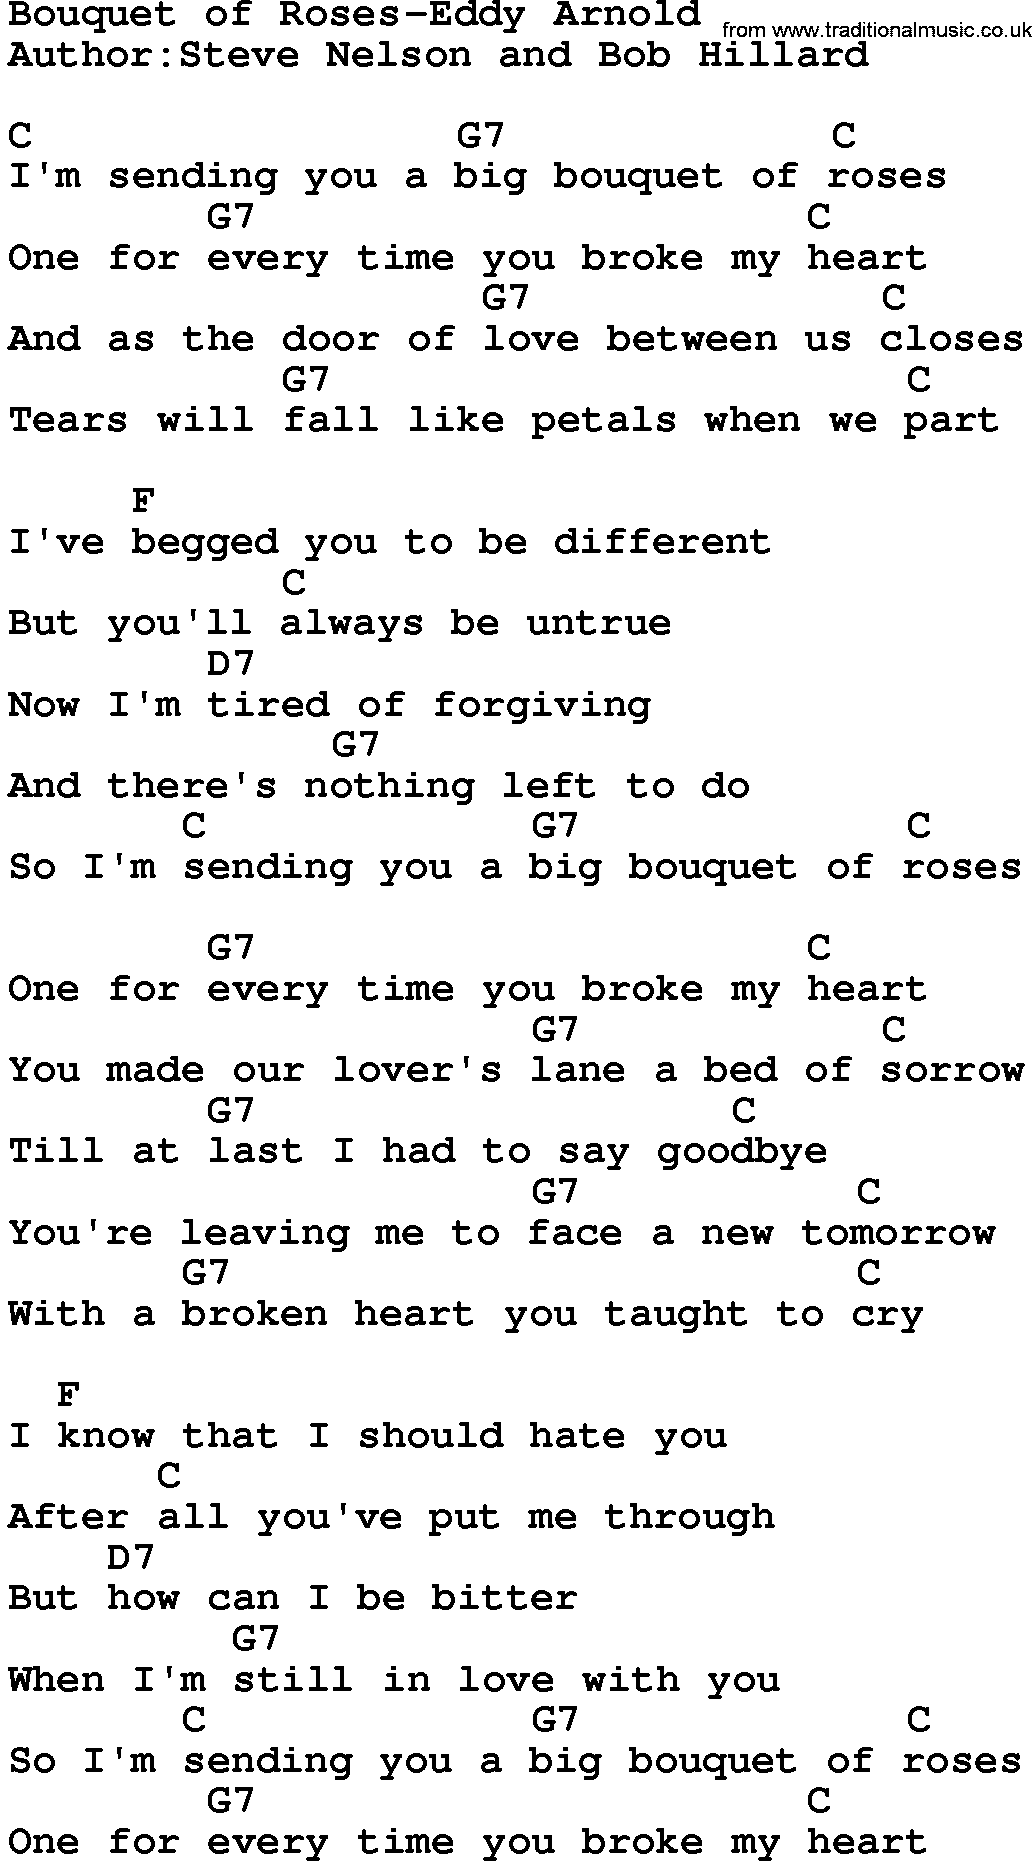 Country Musicbouquet Of Roses Eddy Arnold Lyrics And Chords